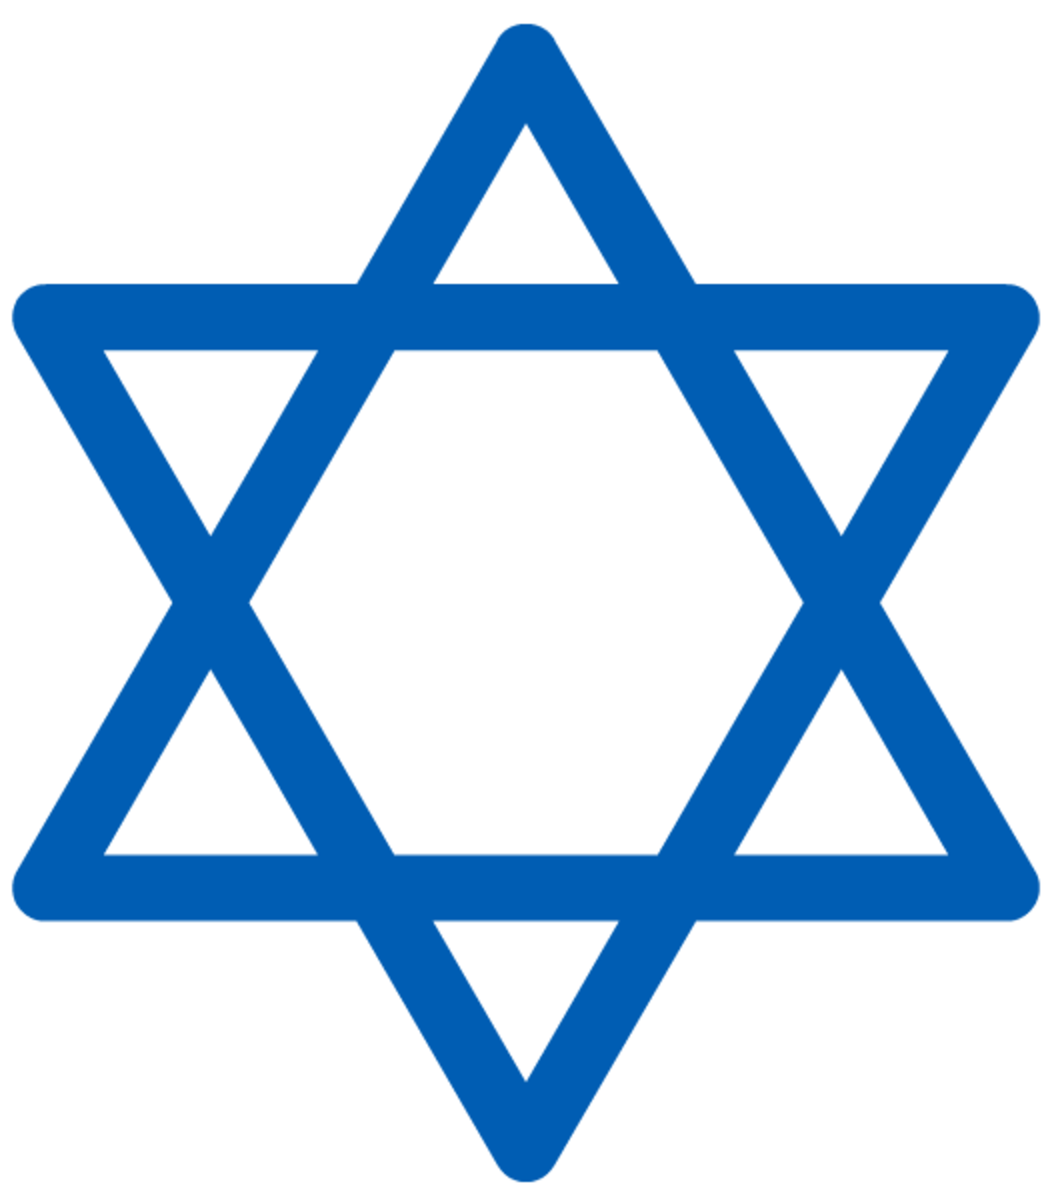 Hanukkah symbols: star of David